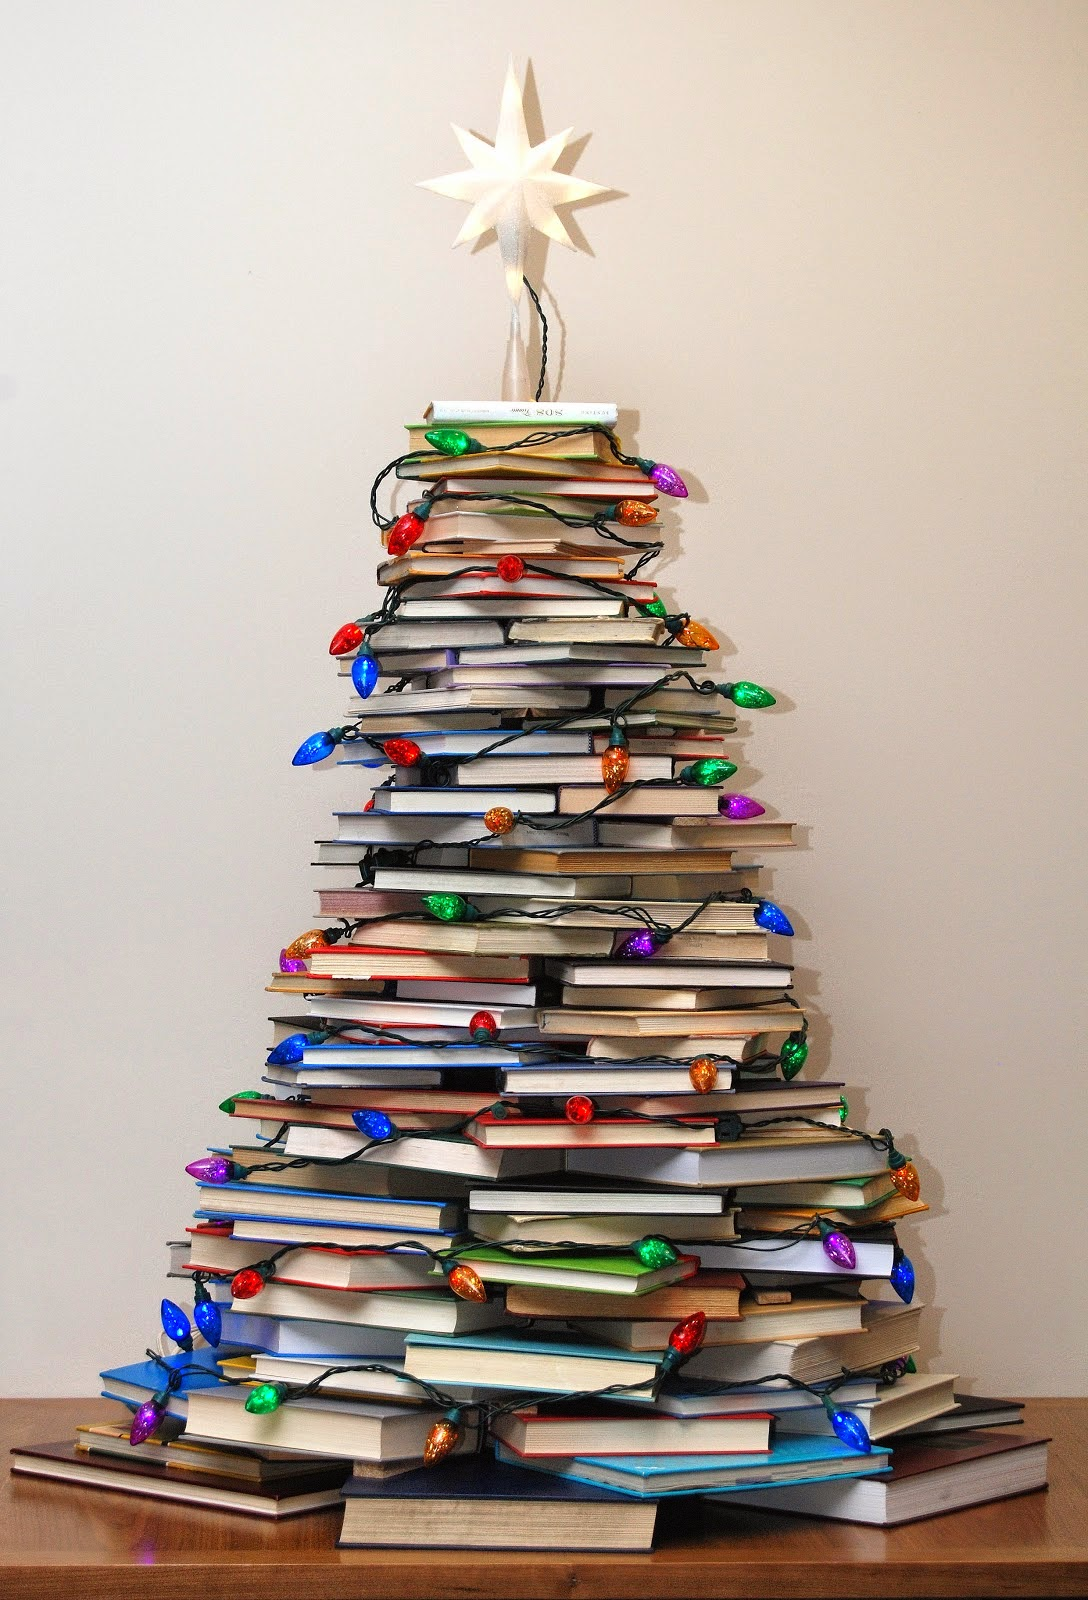 http://verymerryvintagestyle.blogspot.com/2012/12/how-to-make-christmas-tree-with-books.html